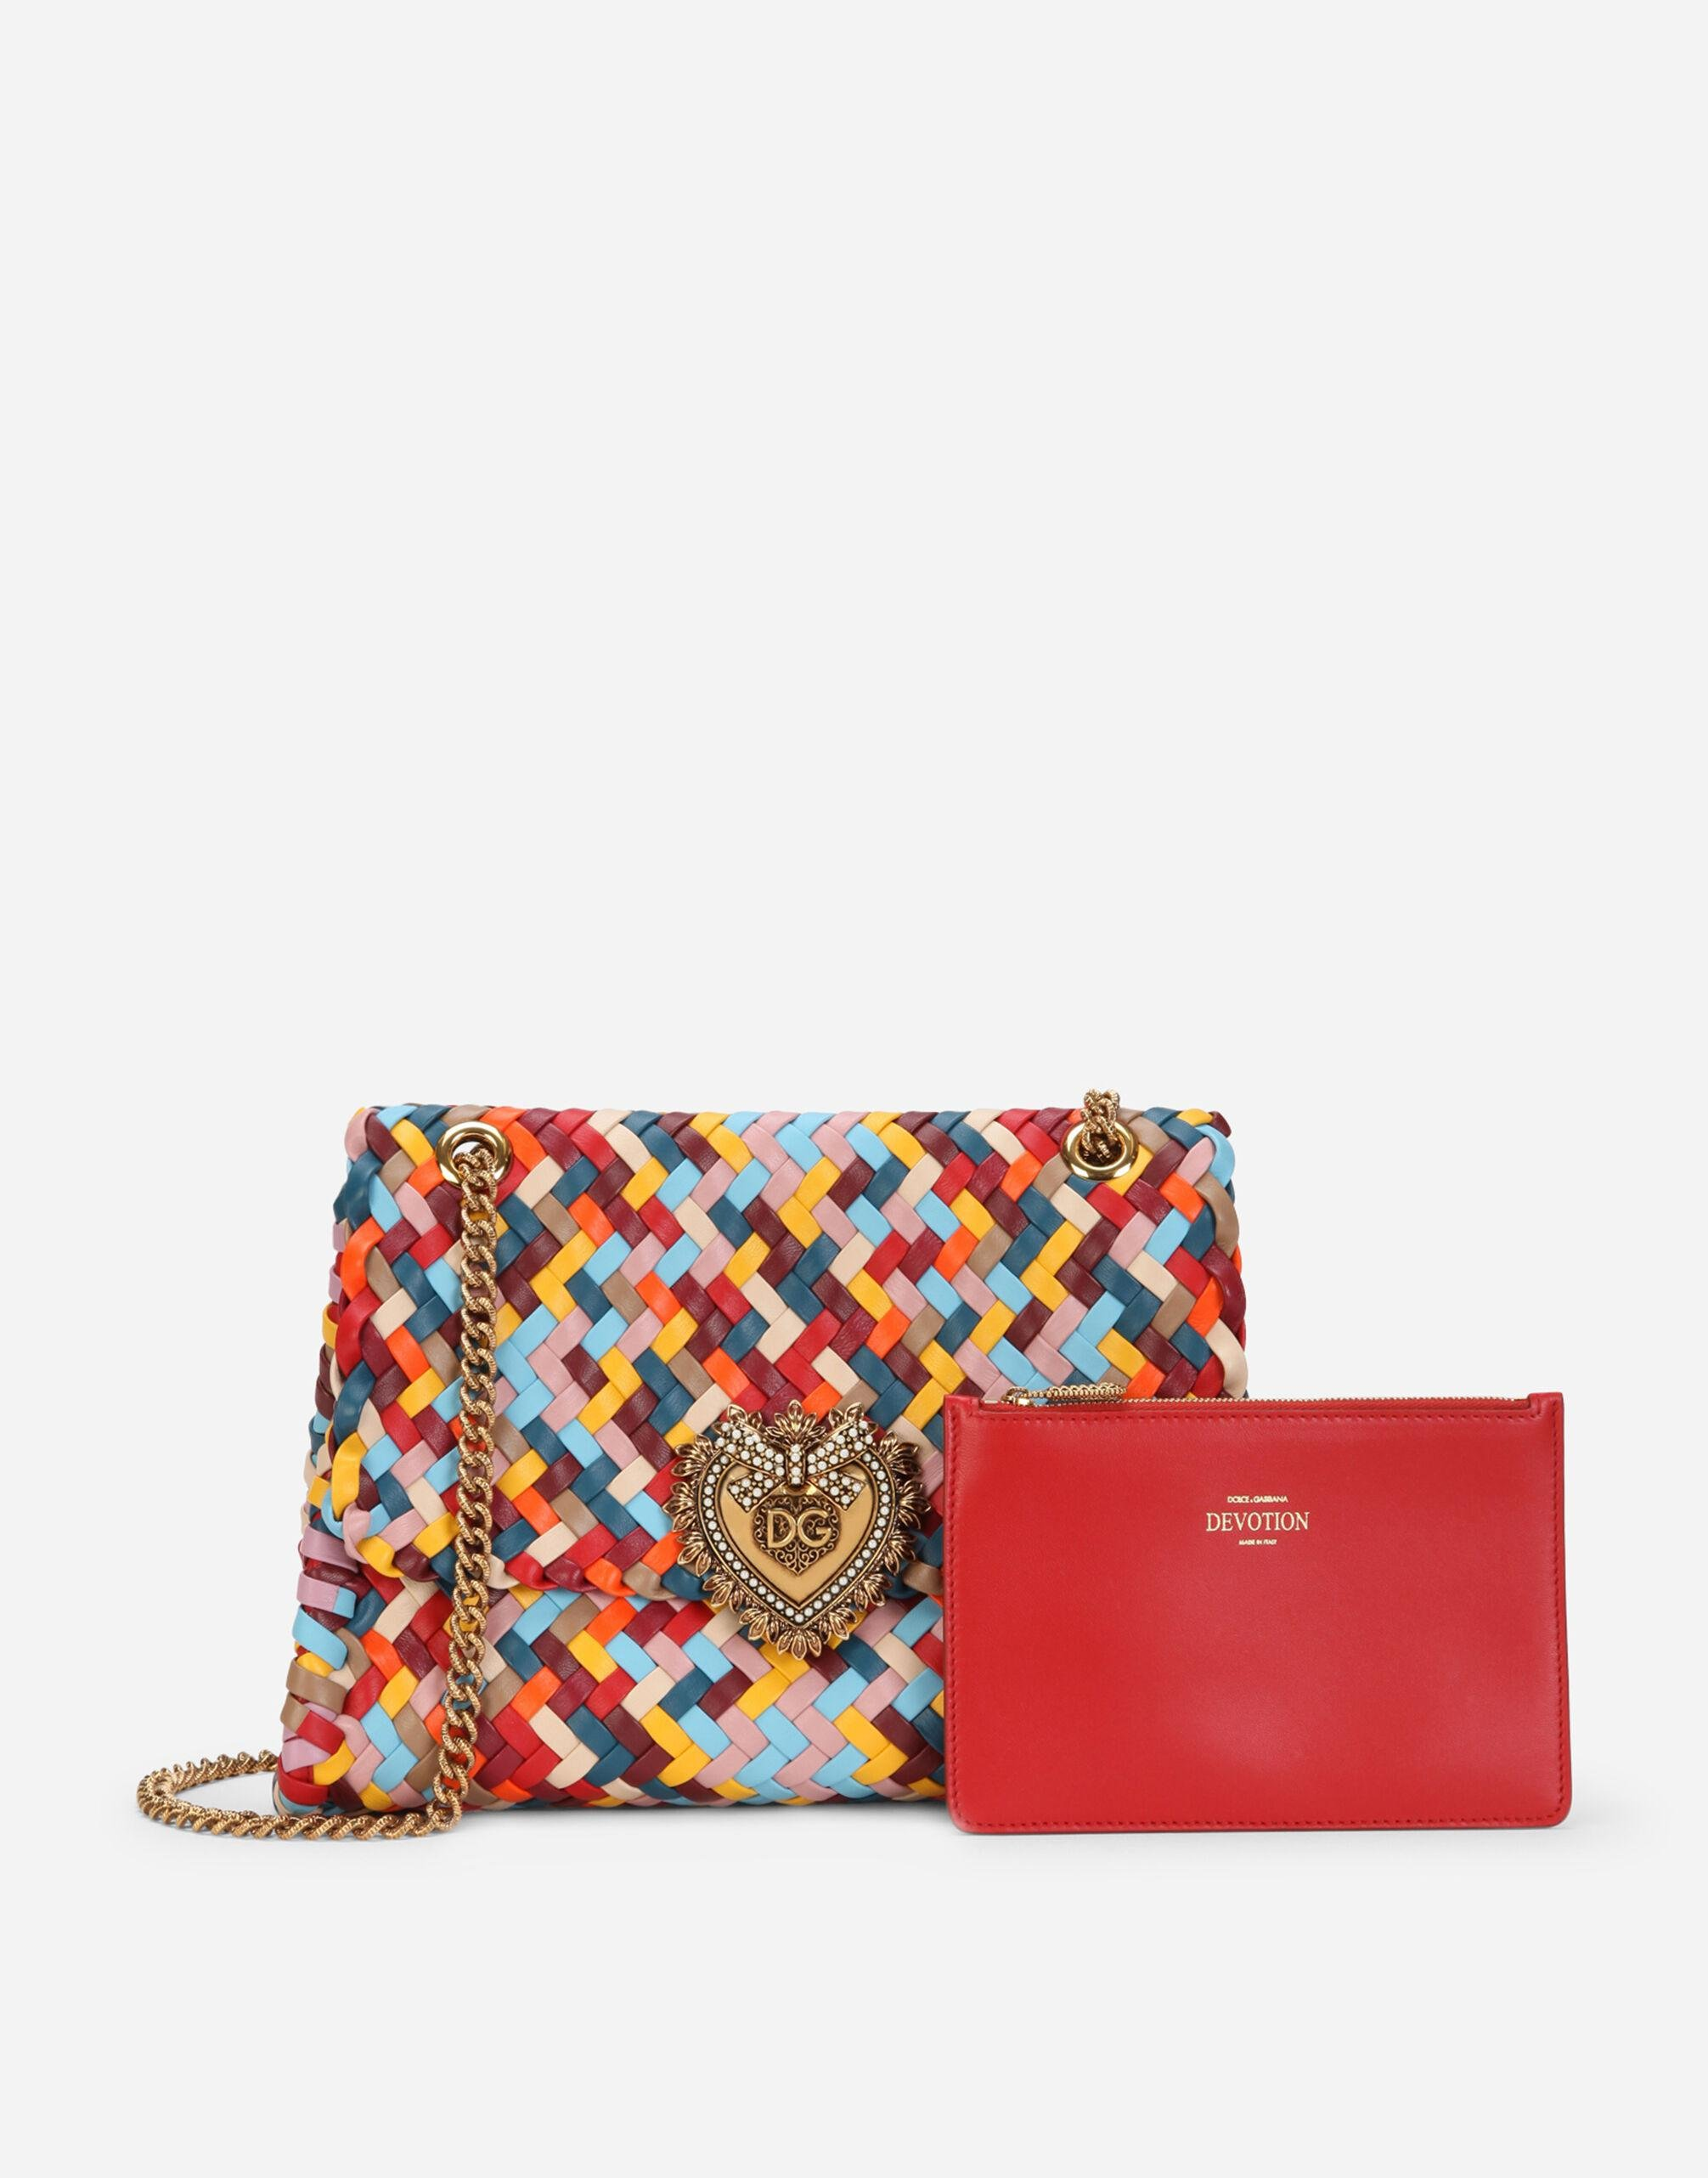 Large Devotion shoulder bag in multi-colored woven nappa leather 3